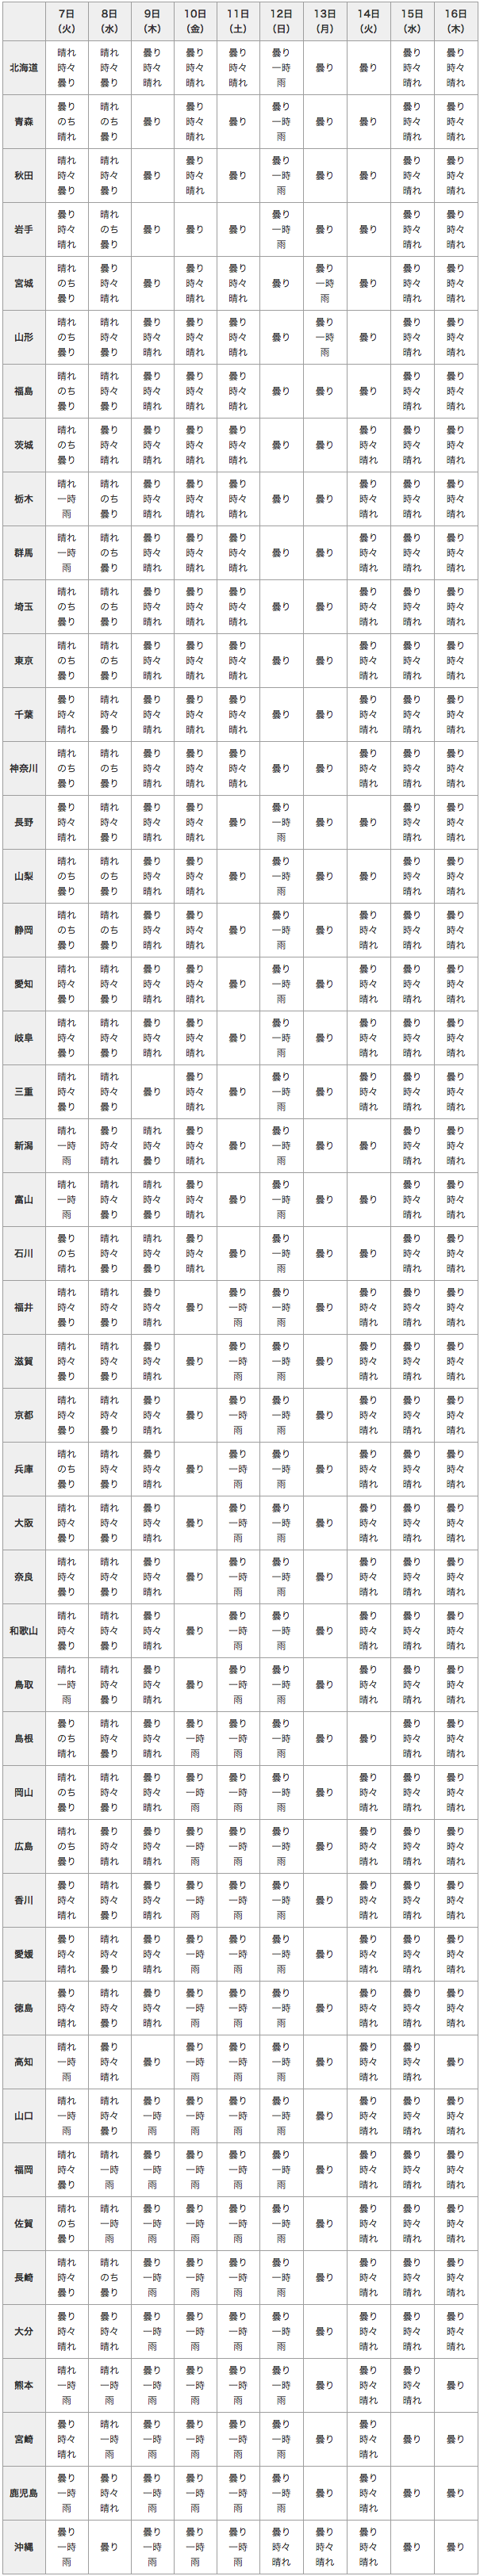 20120807_2_table1